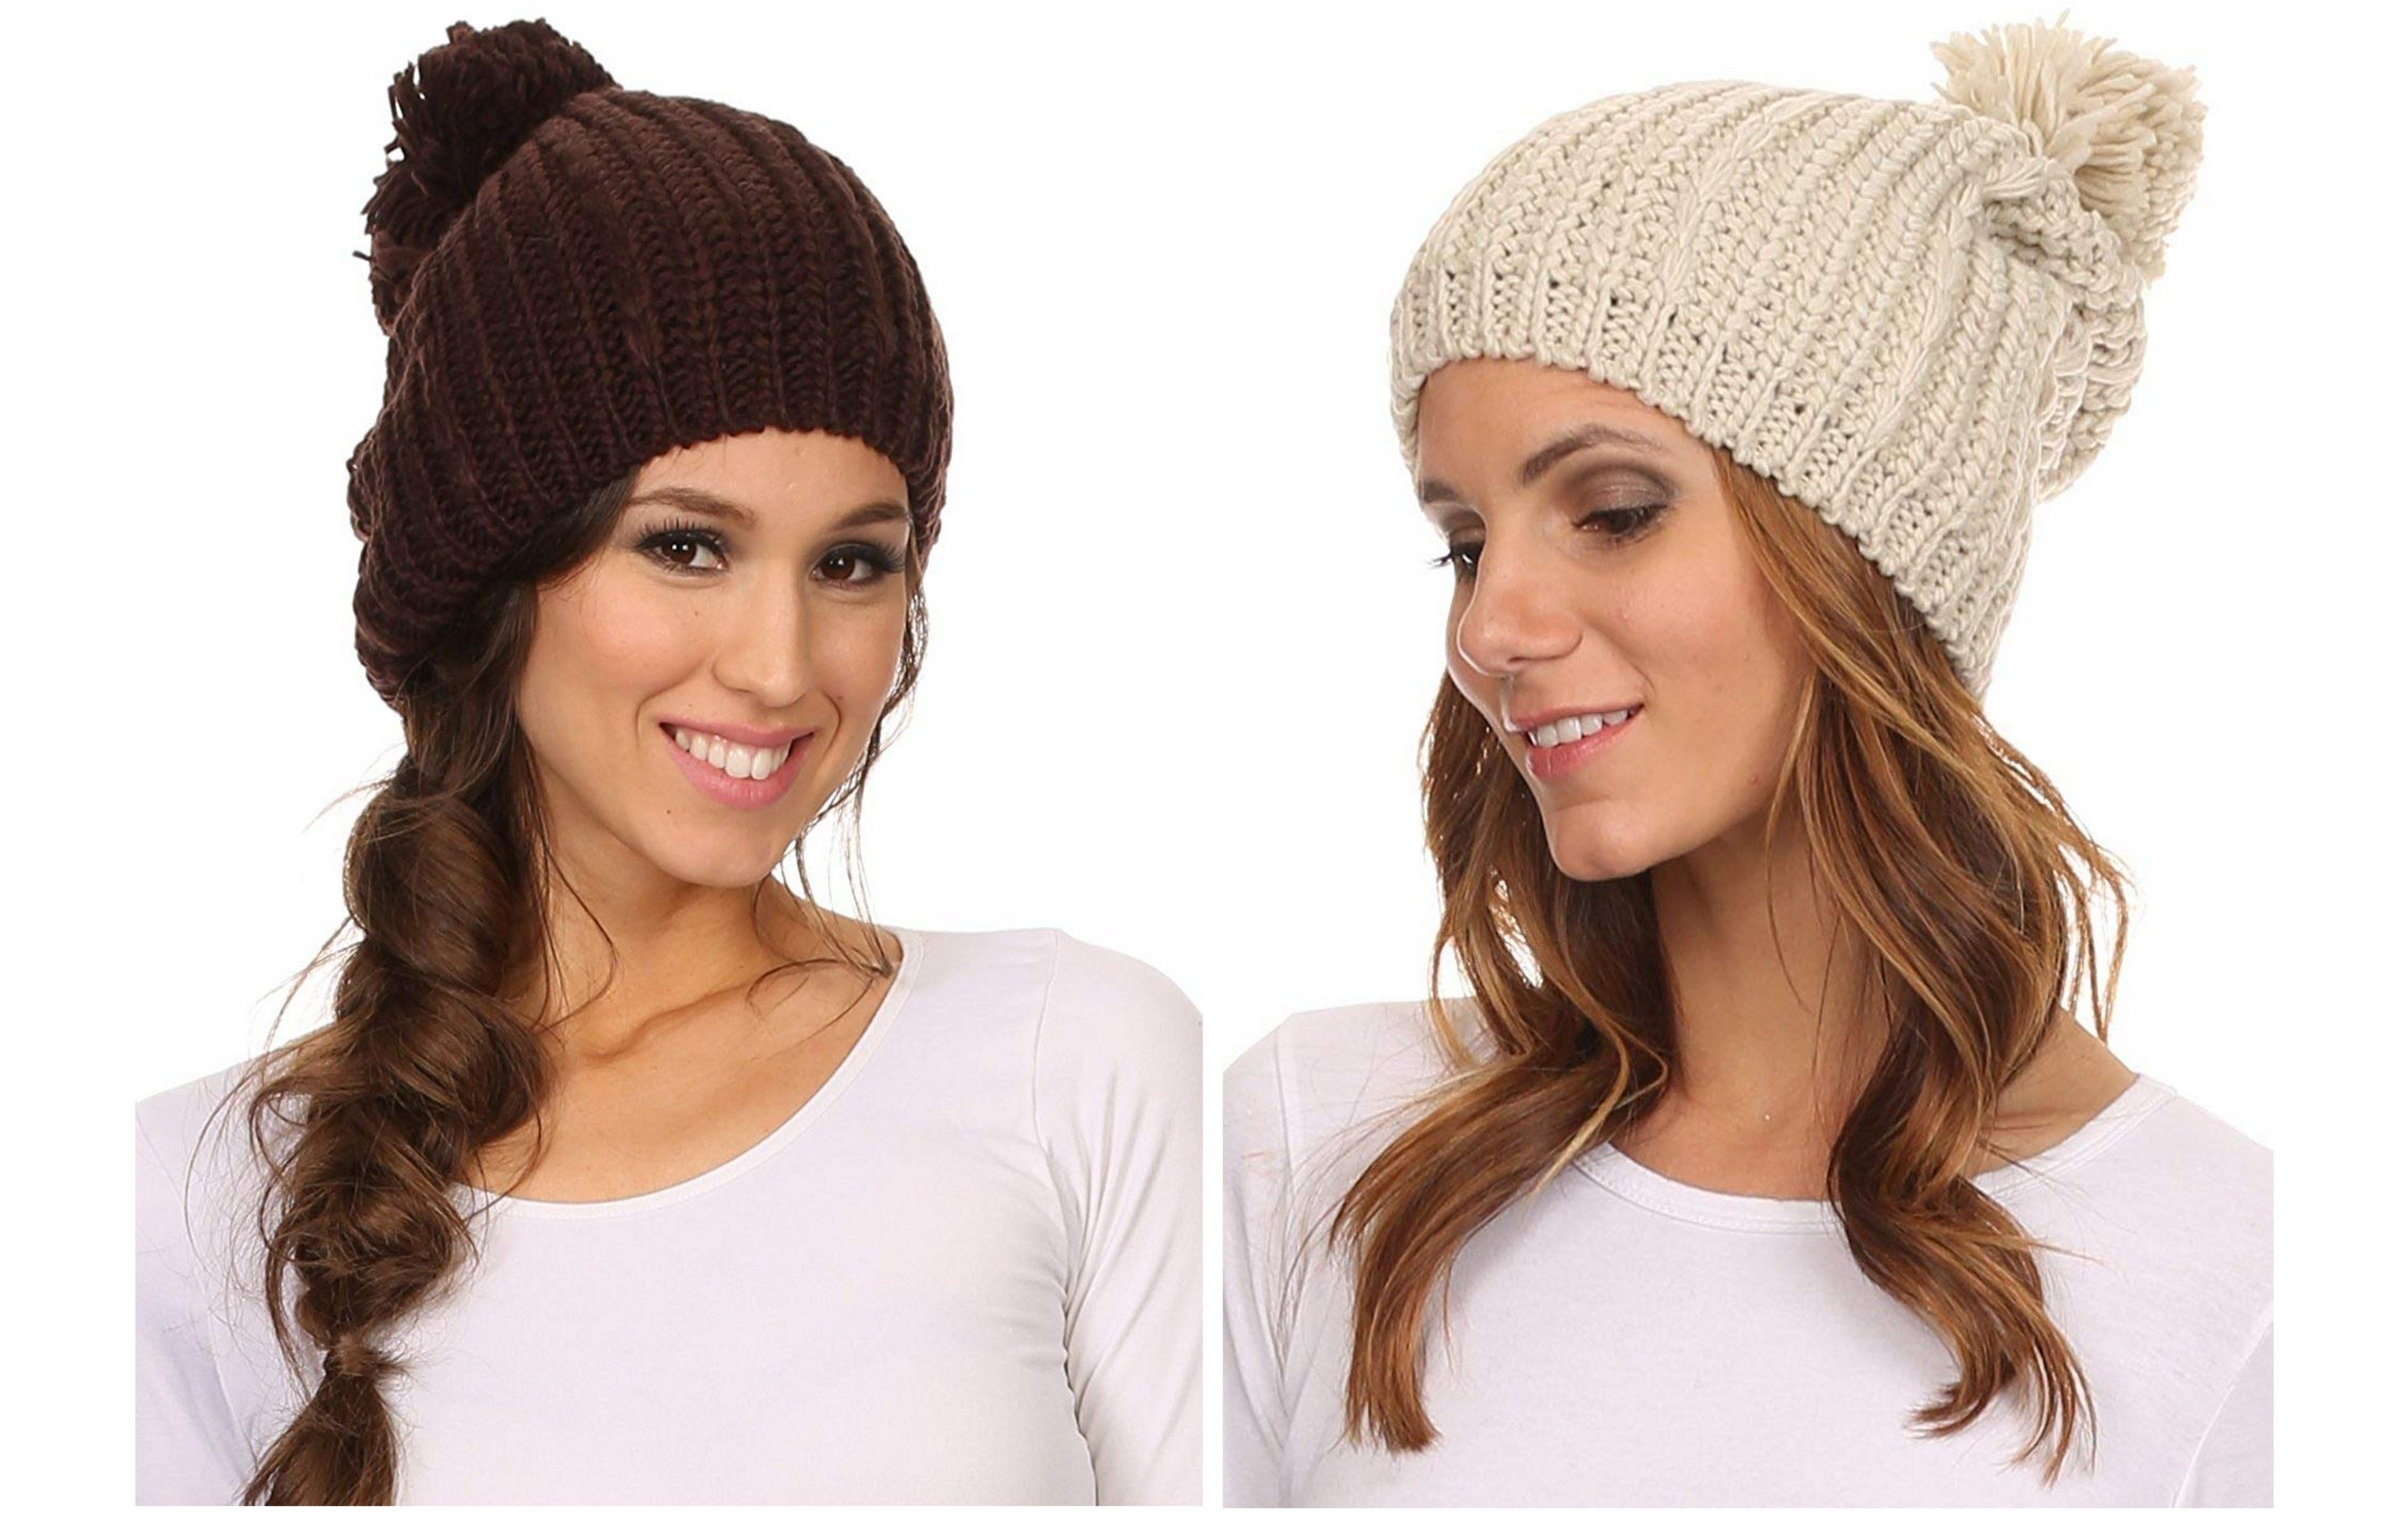 a35fb8cbfb0 Features cable knit pattern with large 5.5 inch (13 cm) pom pom ball at  top. Hat is widest at center base. Soft with a lot of stretch.